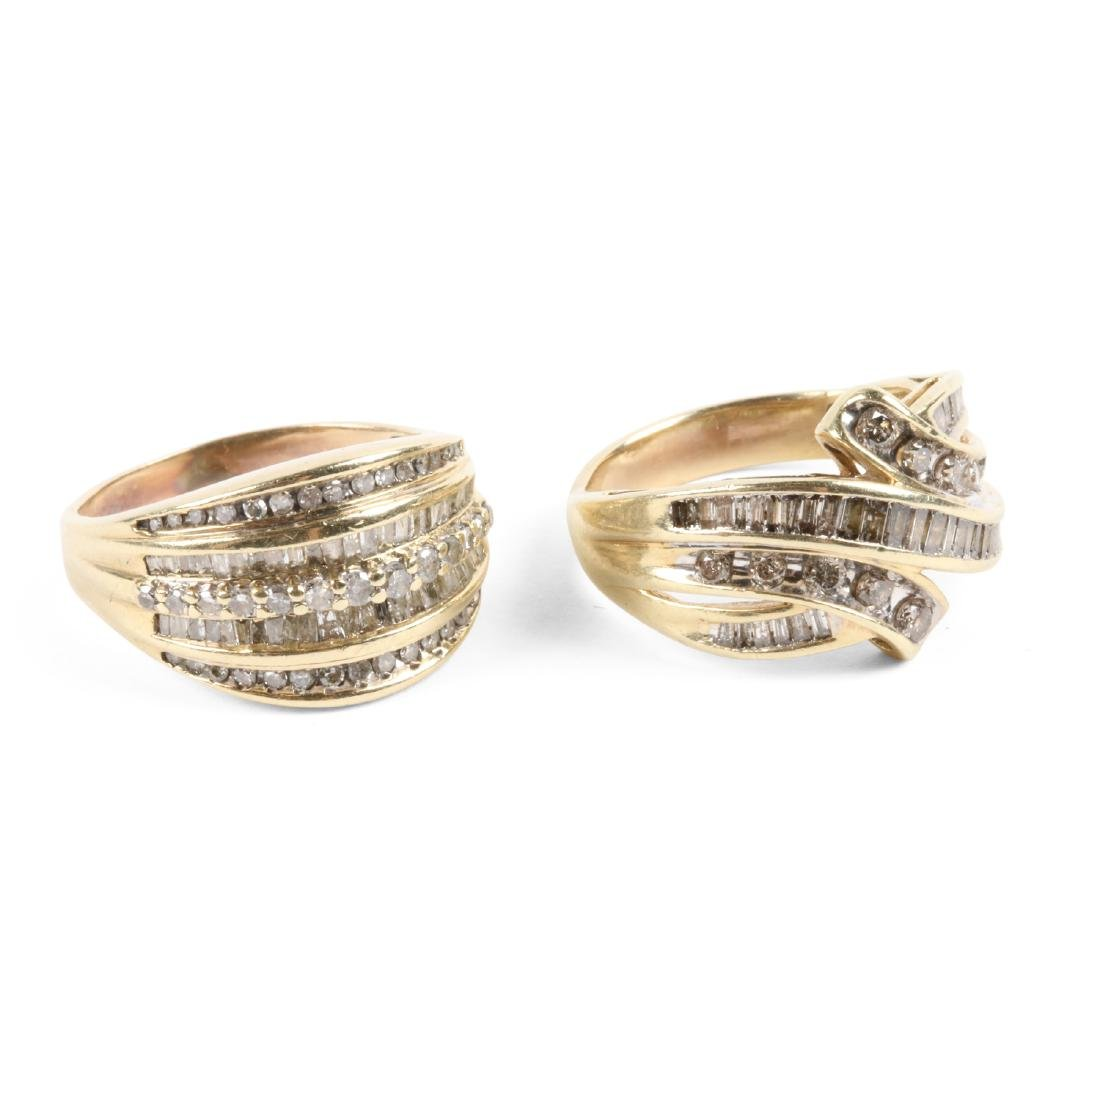 A Pair, 10K Gold & Diamond Rings